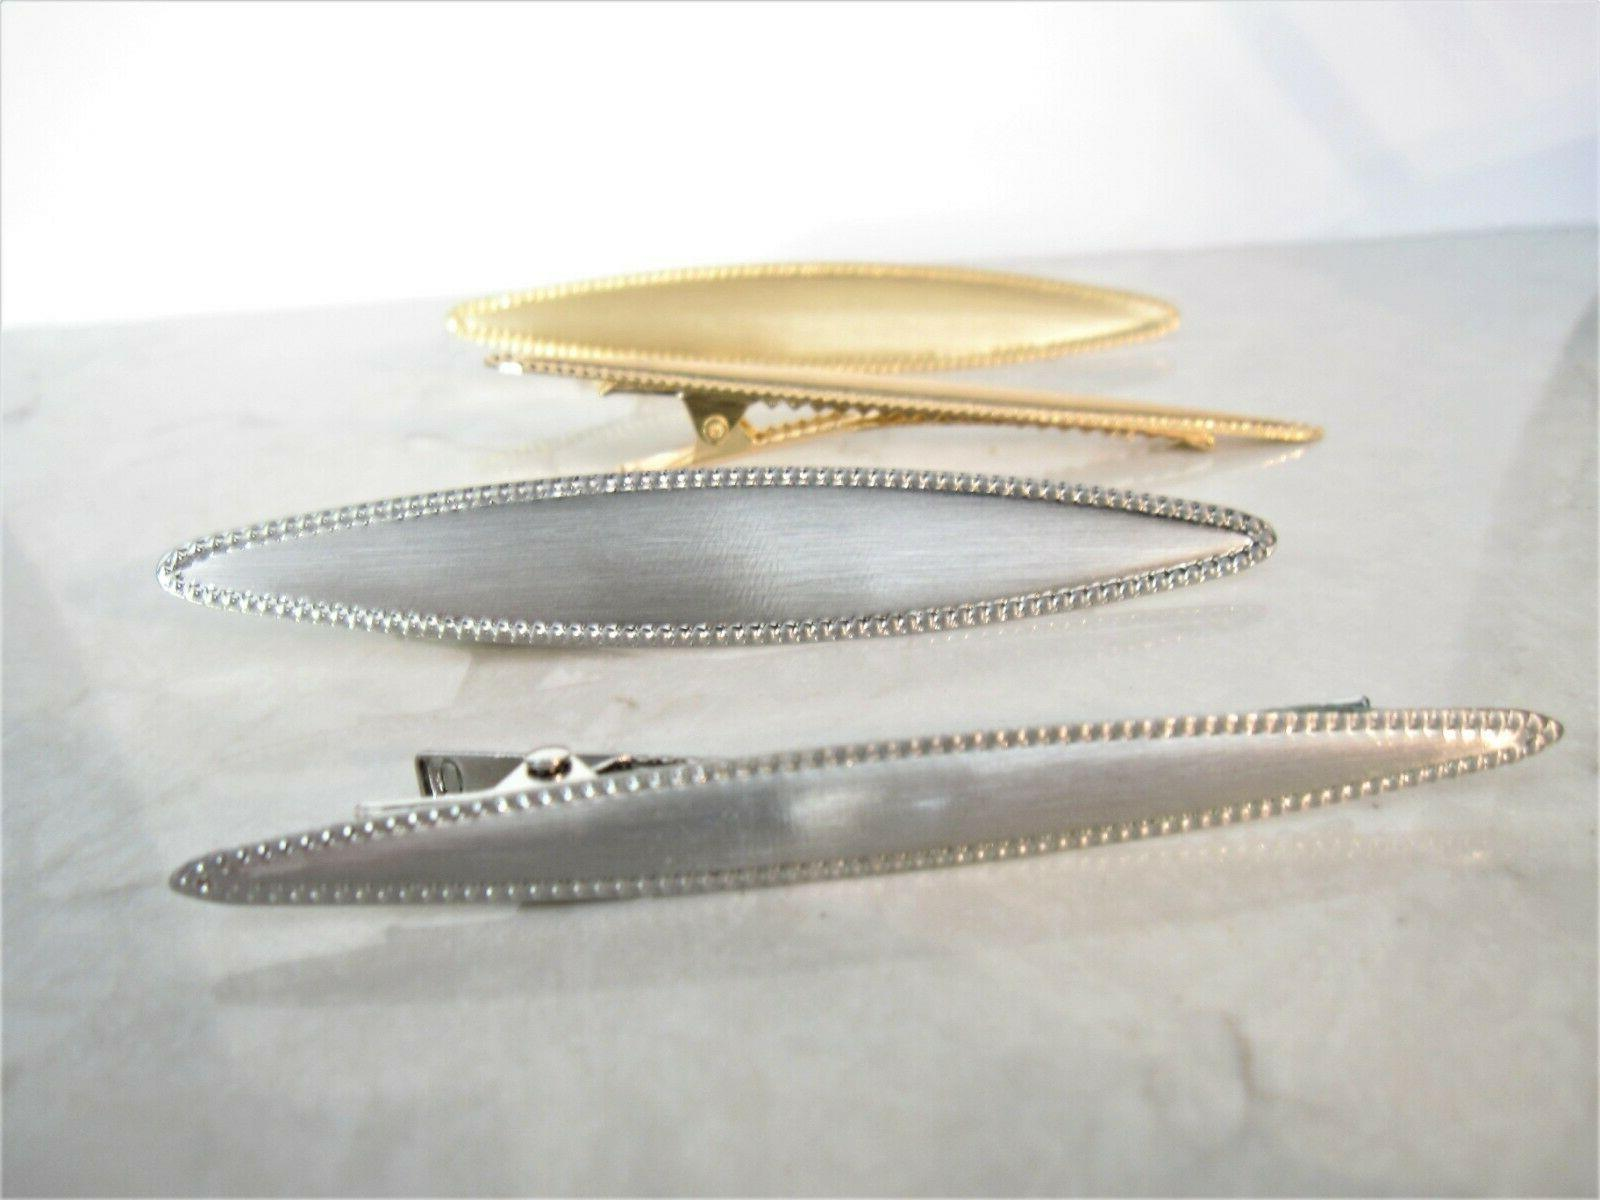 3 smaller gold silver alligator hair claw clip clamp